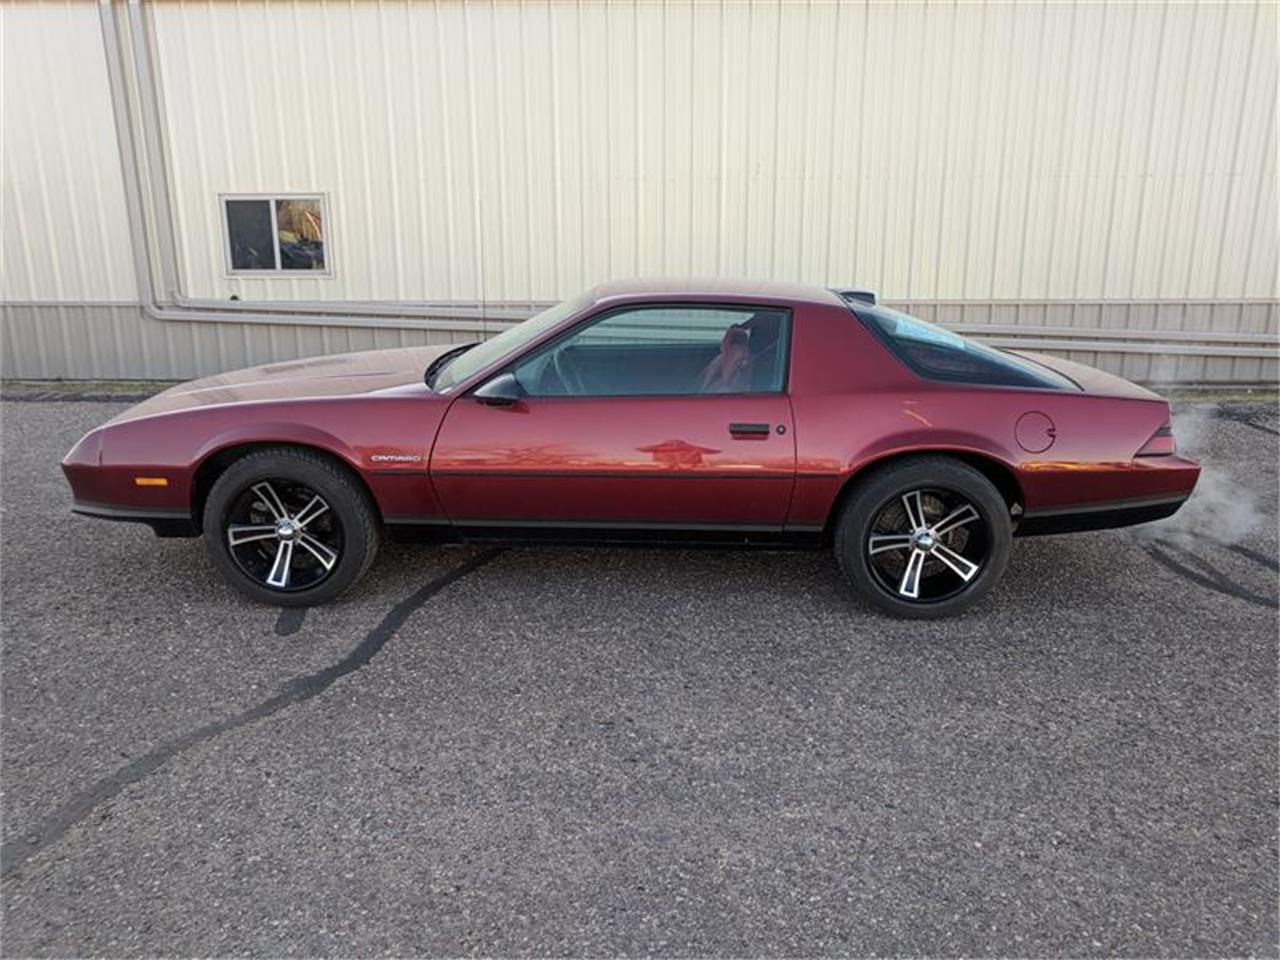 1986 Chevrolet Camaro For Sale Classiccars Com Cc 1051408